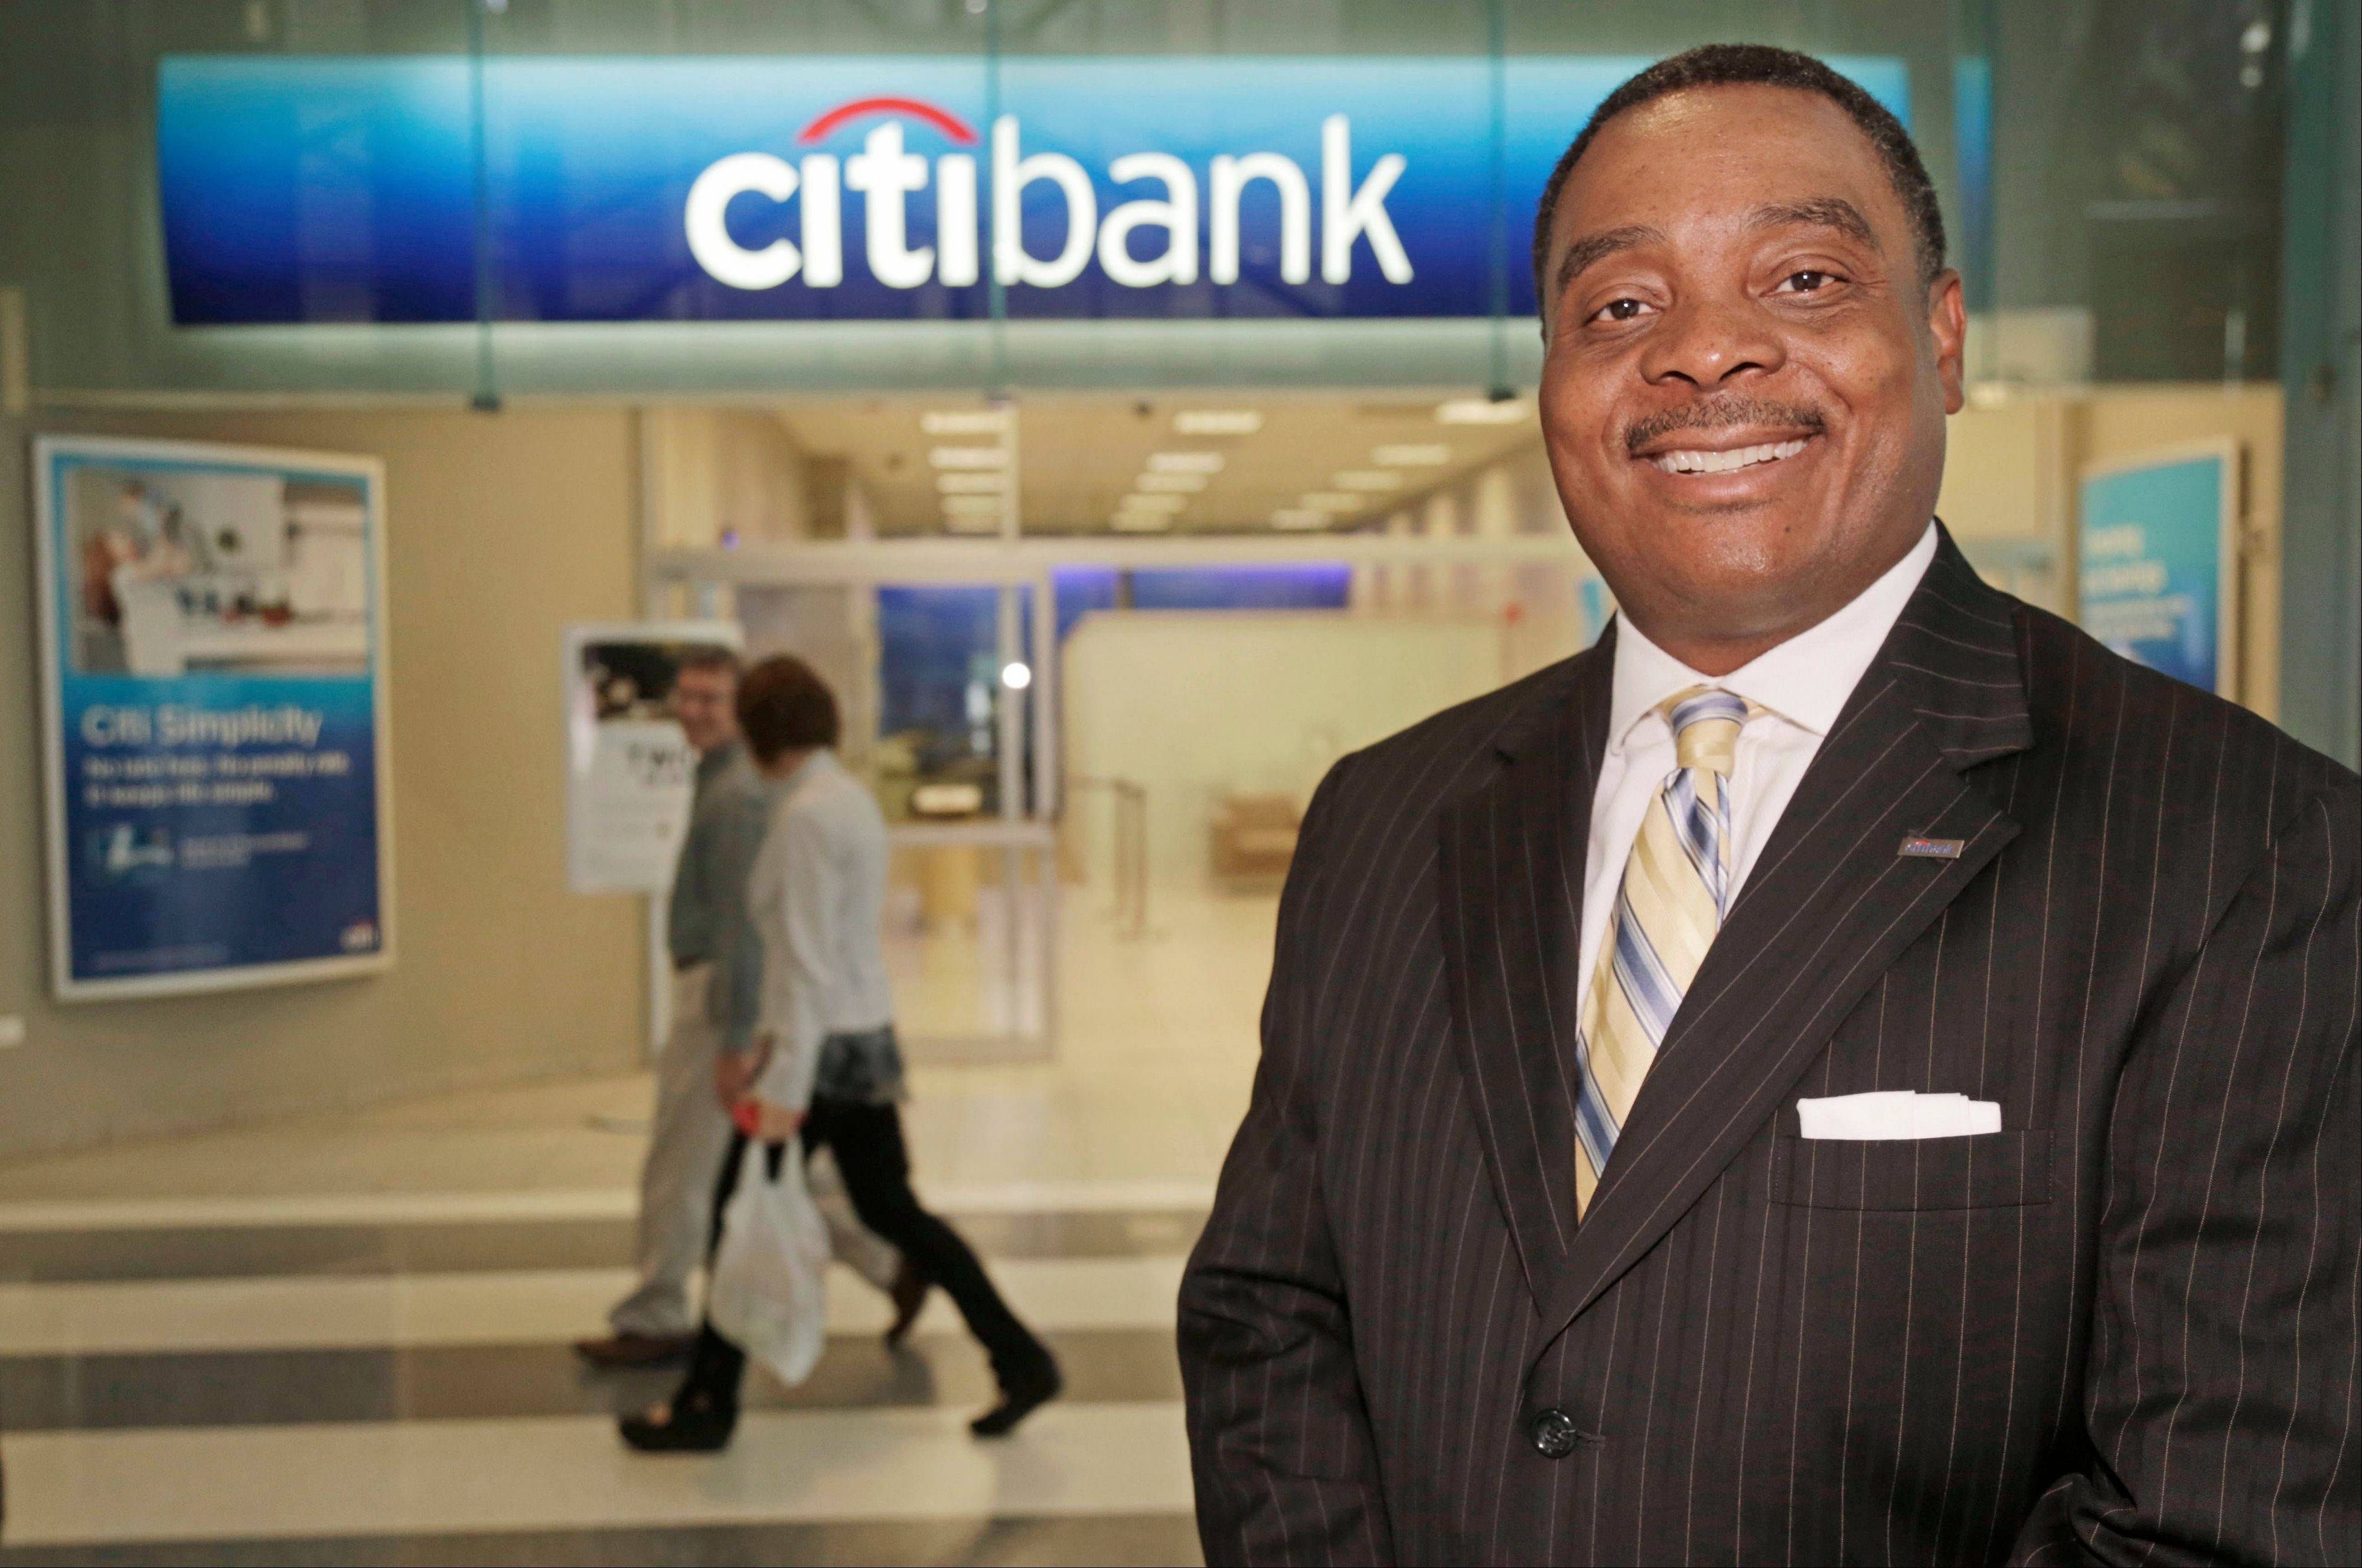 Jerome Byers, the head of small business banking at Citigroup poses in front of a downtown Chicago Citibank branch. Byers, a former small business owner himself, is working to change the impression that Citigroup caters to just big corporate and international clients.